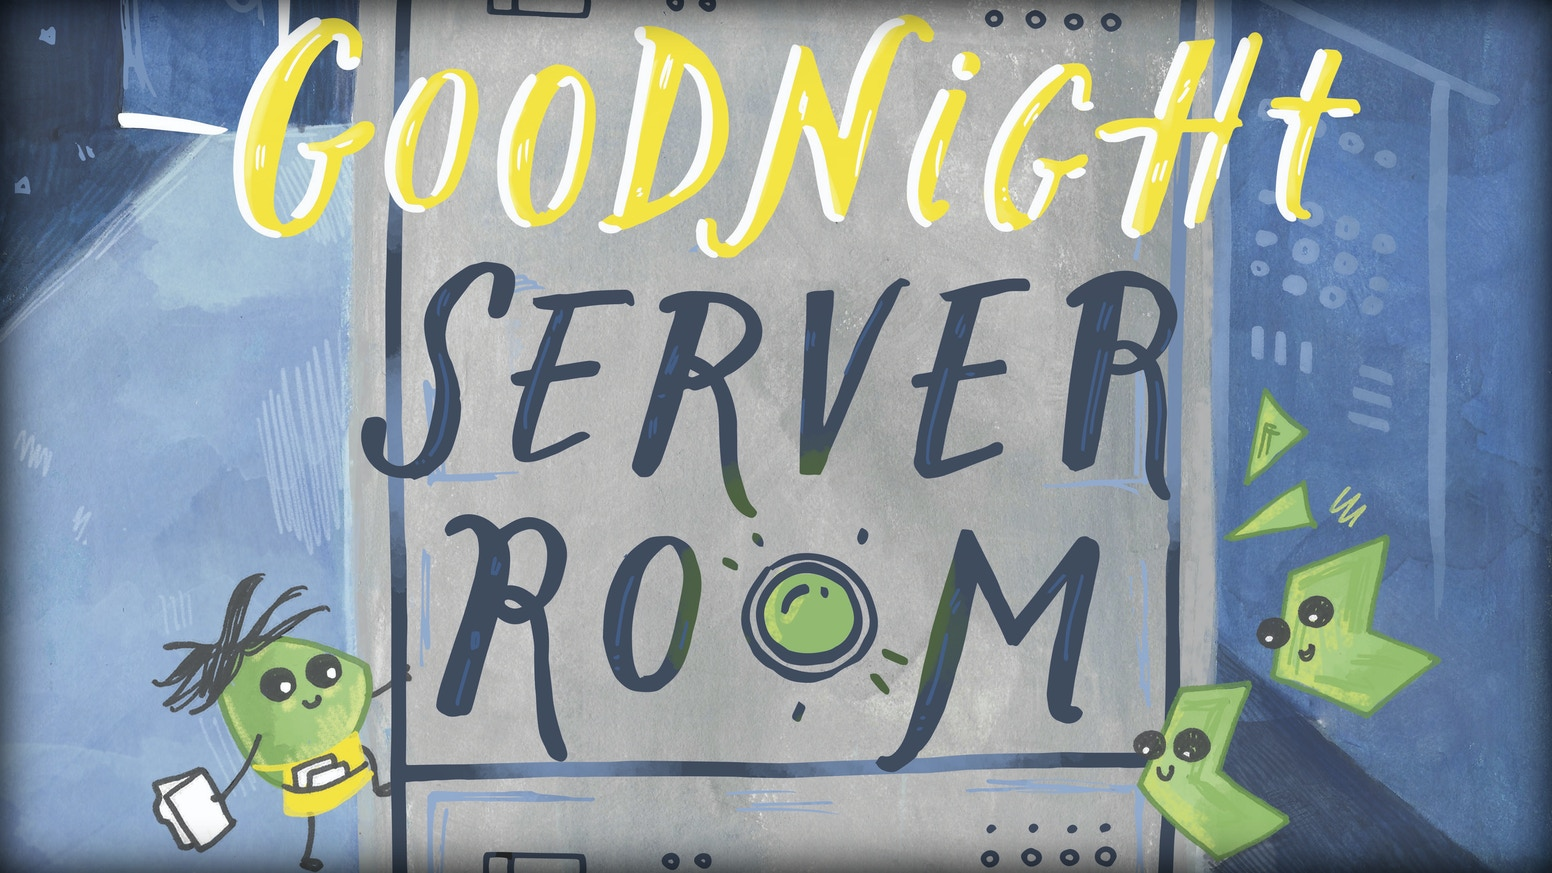 Goodnight Server Room is a children's book about computers and data written for kids ages one to five.